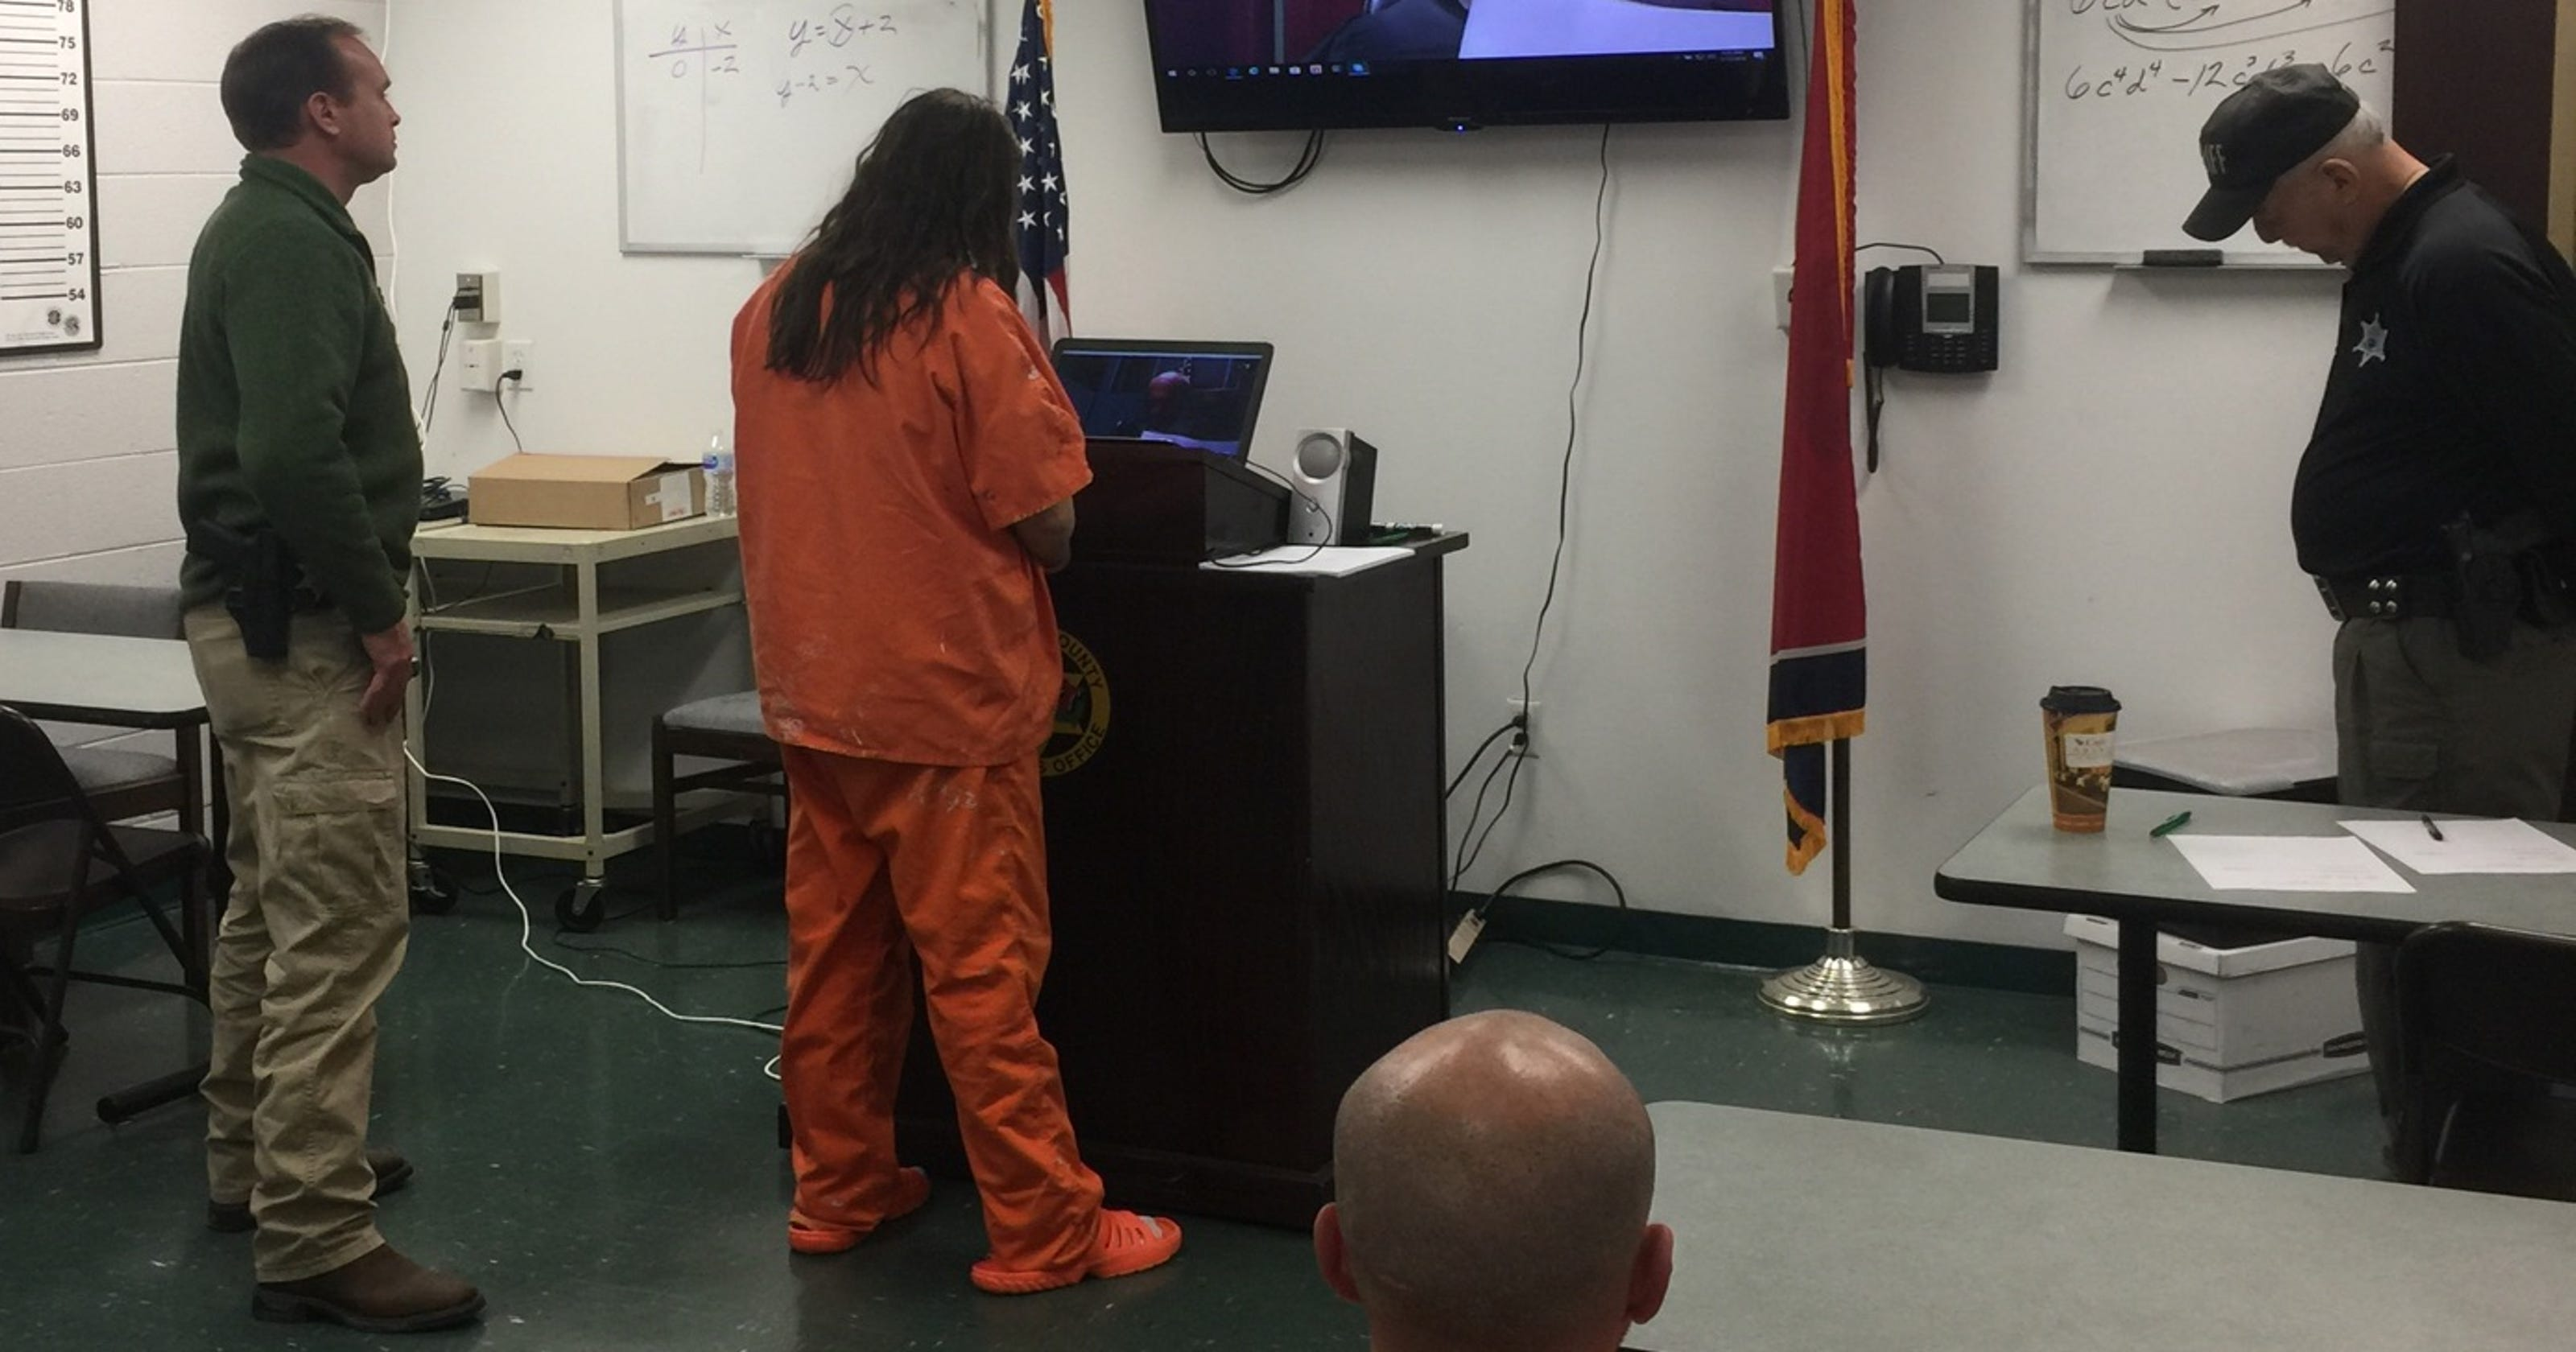 Video arraignments from jail helps streamline court process